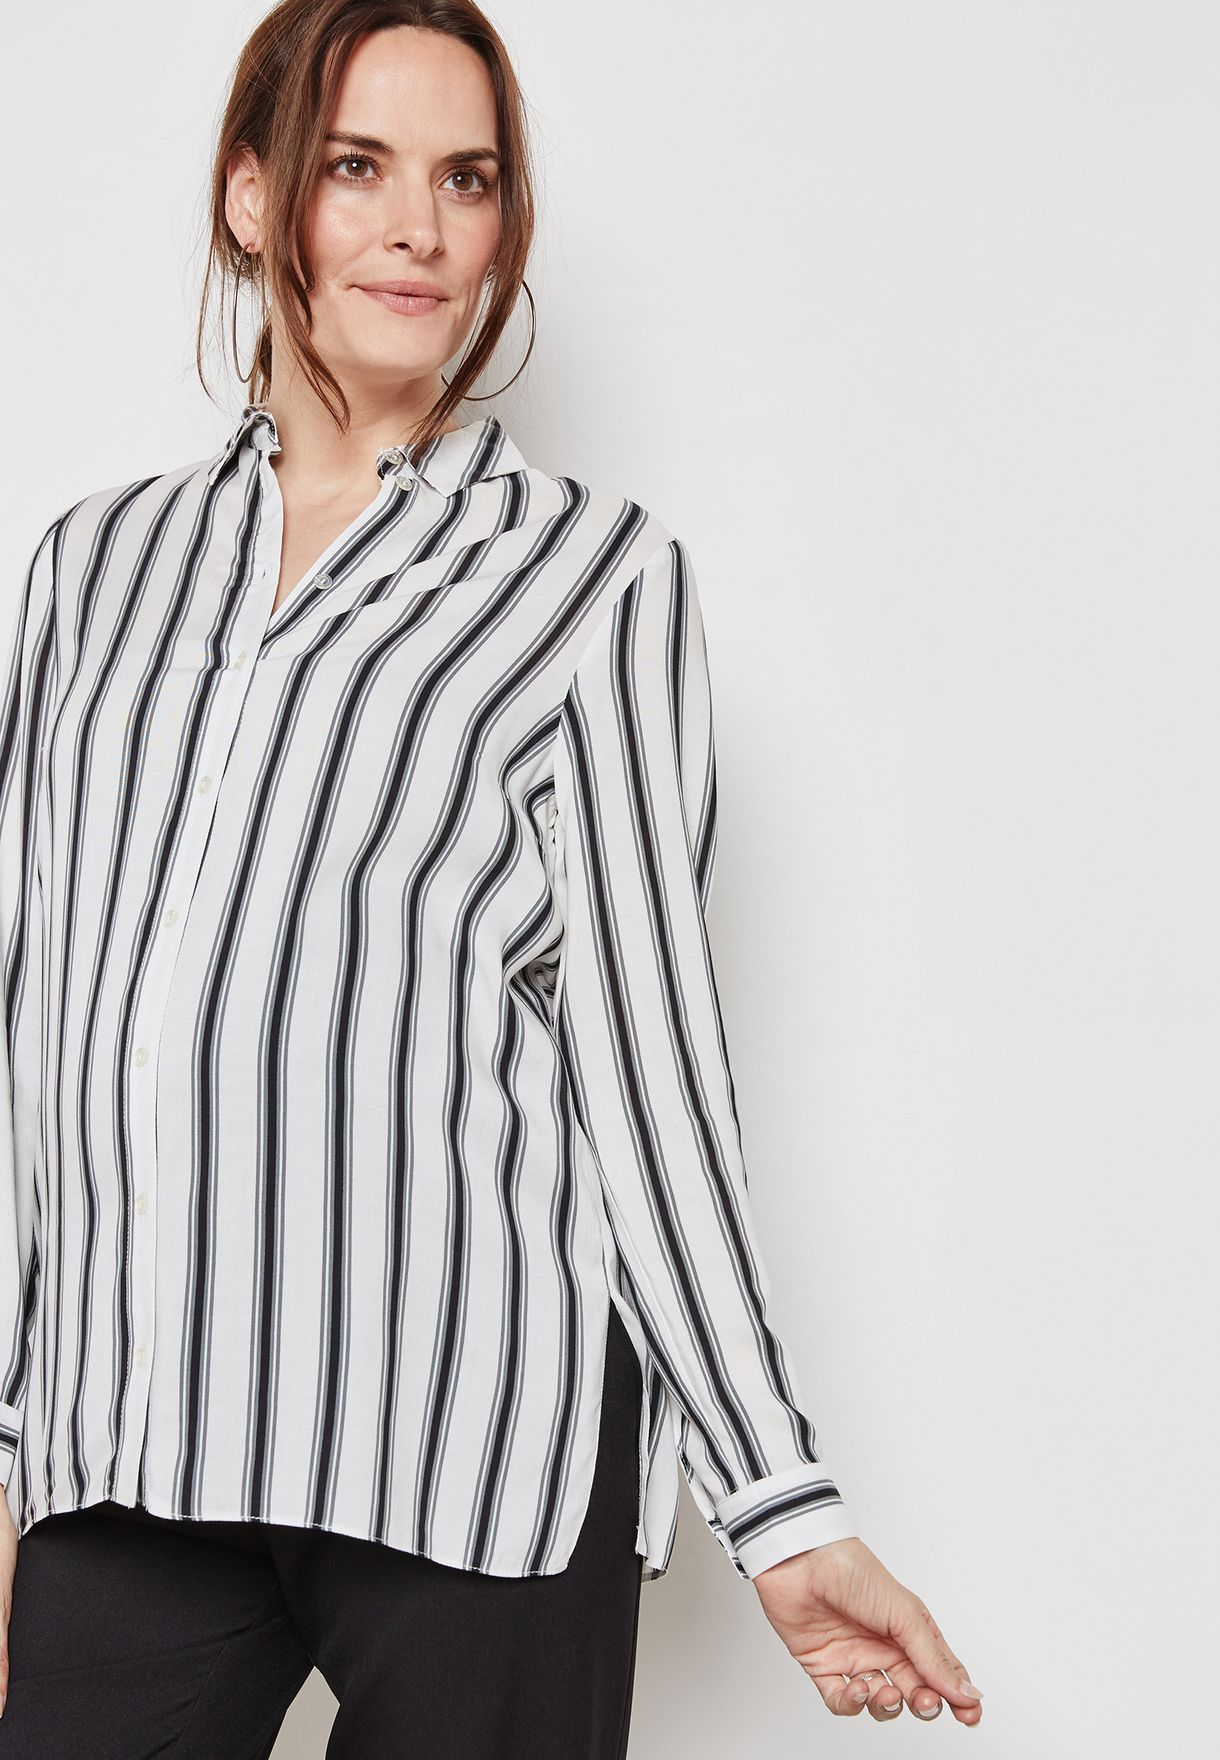 f78db40819ab06 Shop New Look Maternity stripes Striped Shirt 5631066 for Women in ...